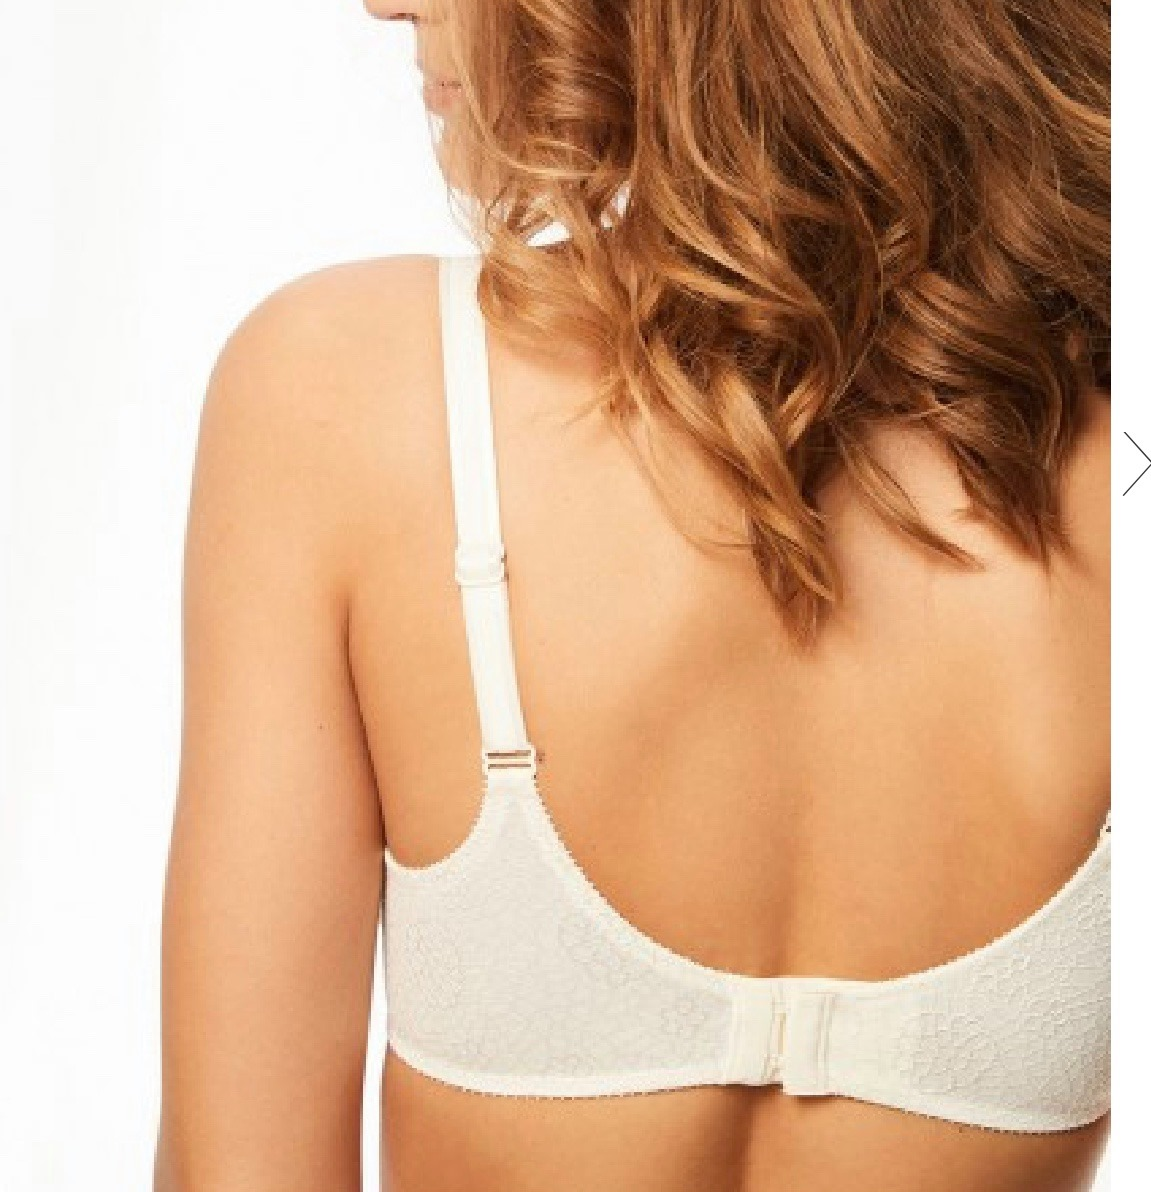 gallery-2127-for-602AA4307